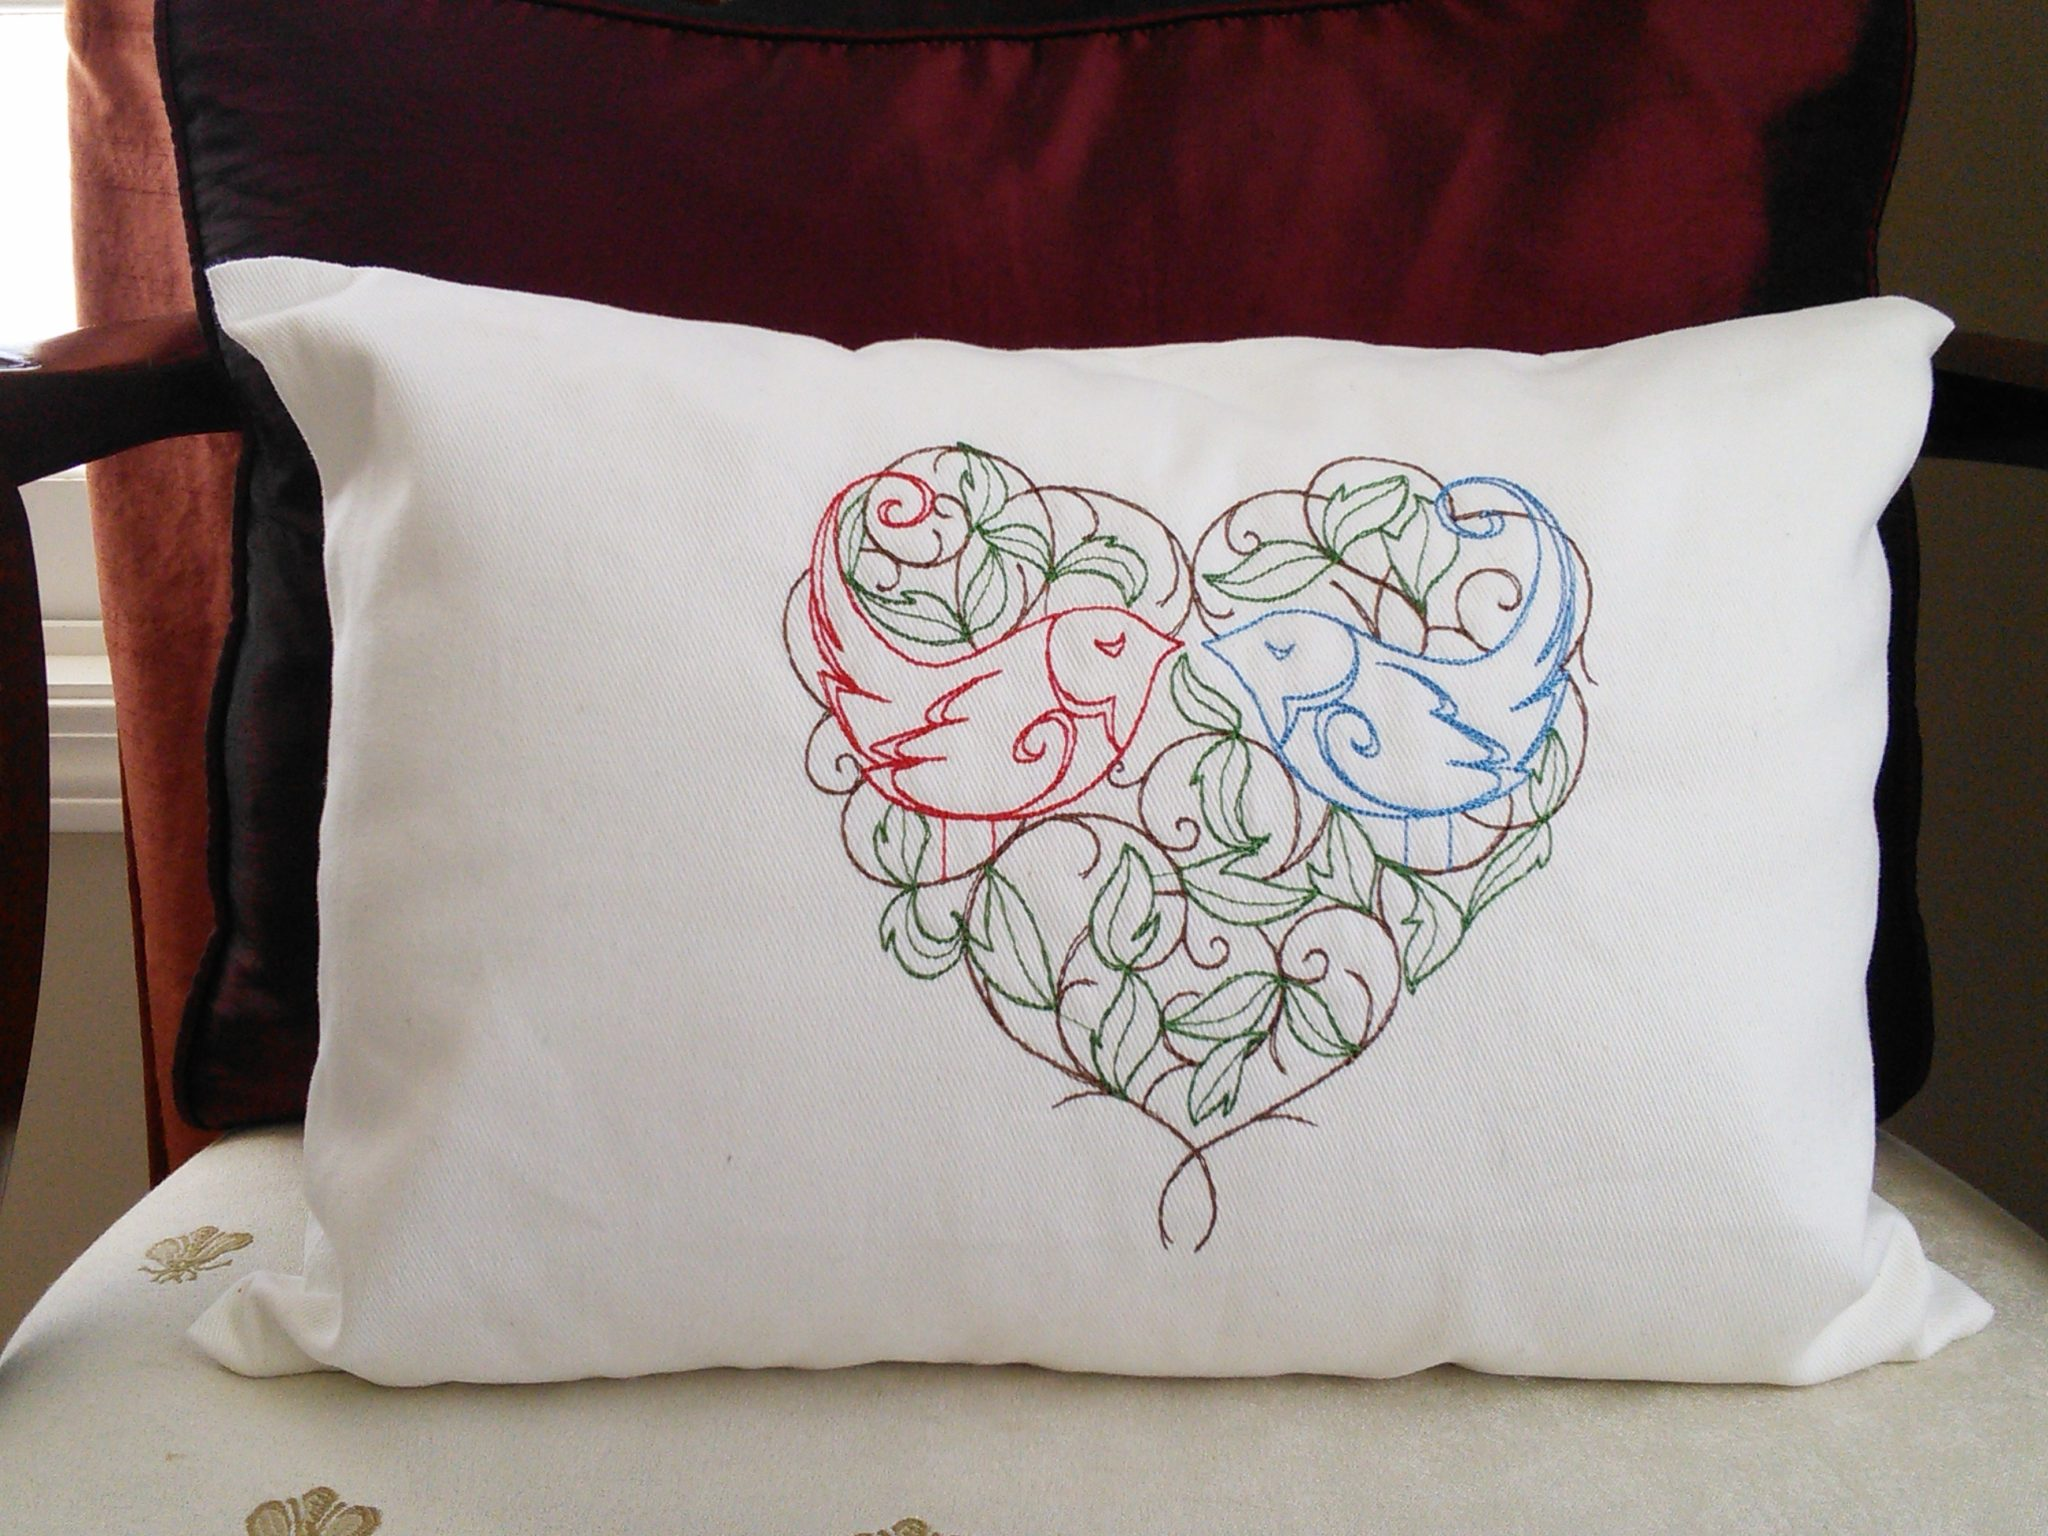 Embroidered Pillows Vineyard Thimble